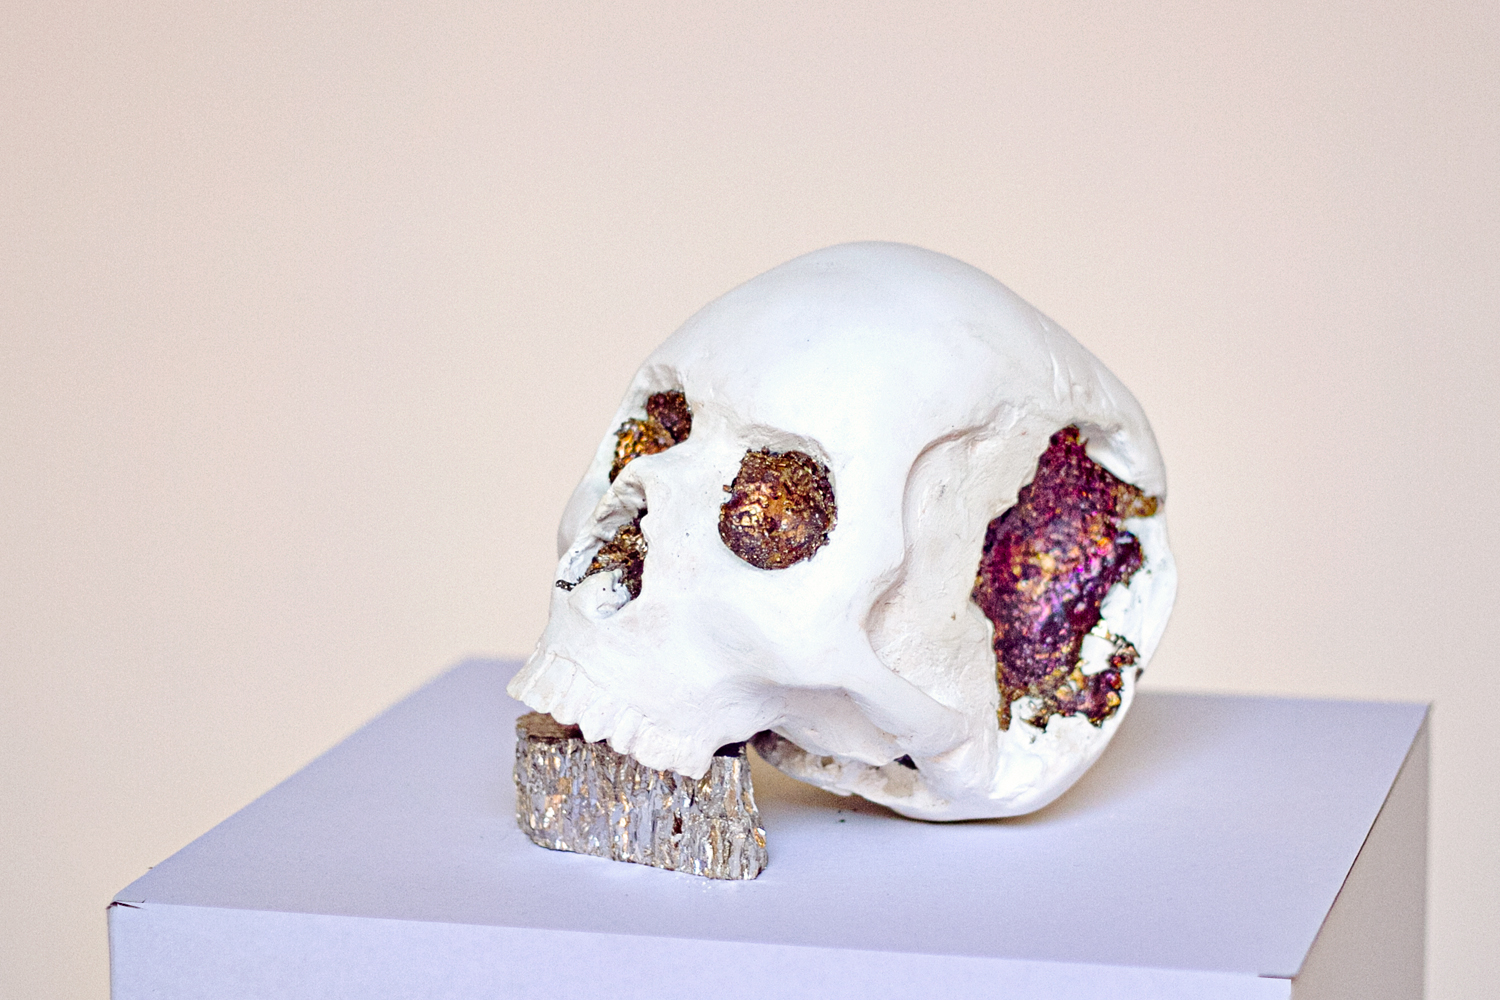 Bismuth skull made by riikc